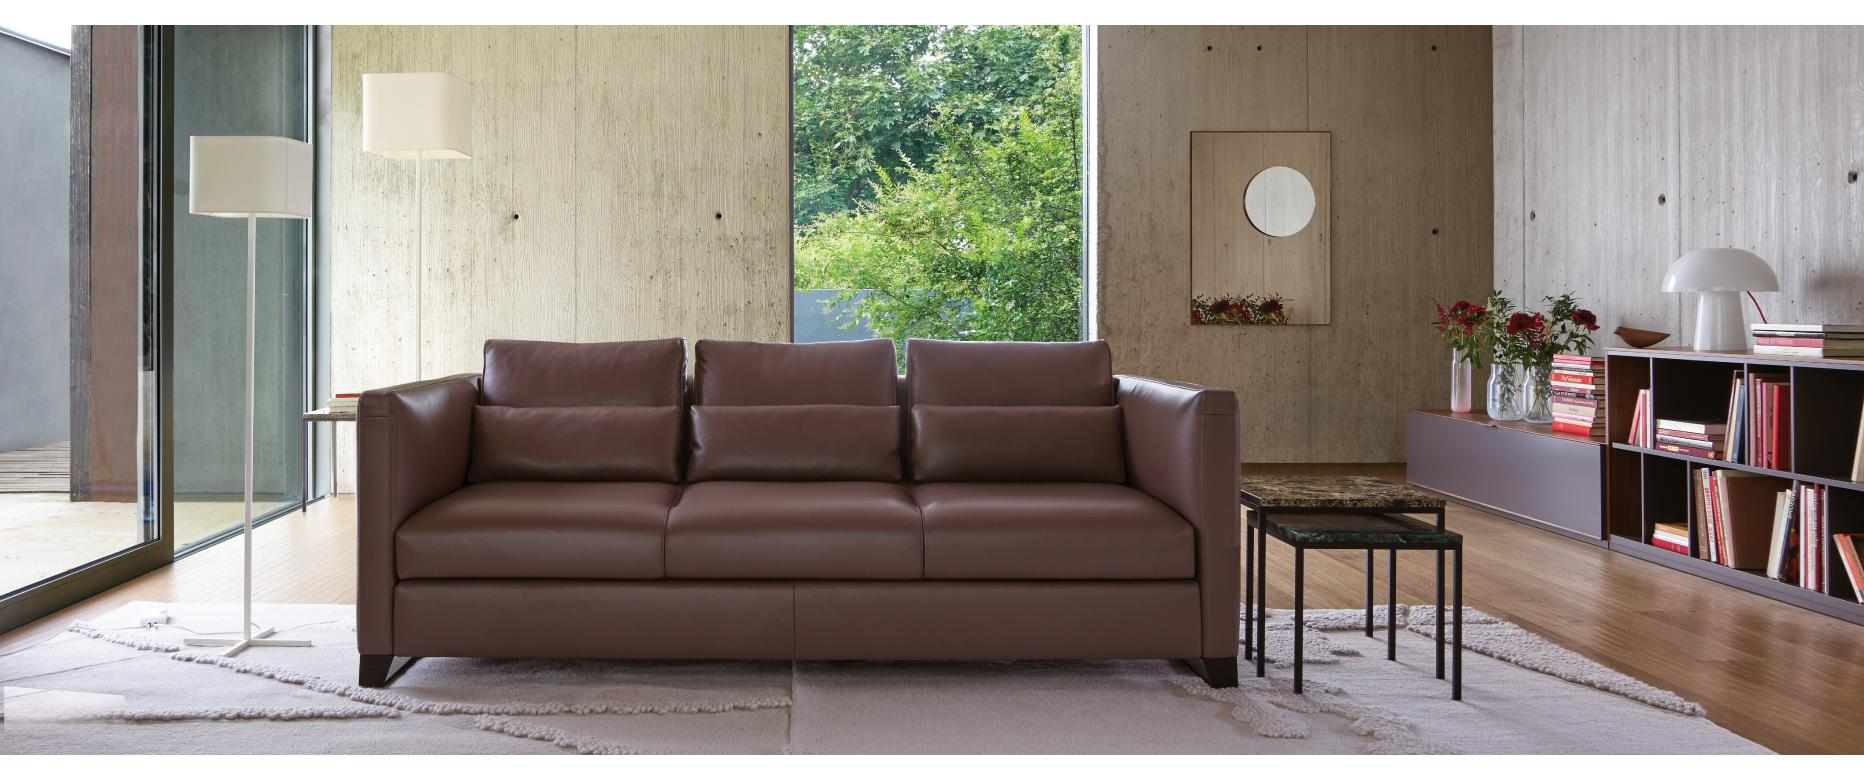 Natuzzi Couchtisch Glas Ligne Roset Official Site Contemporary High End Furniture